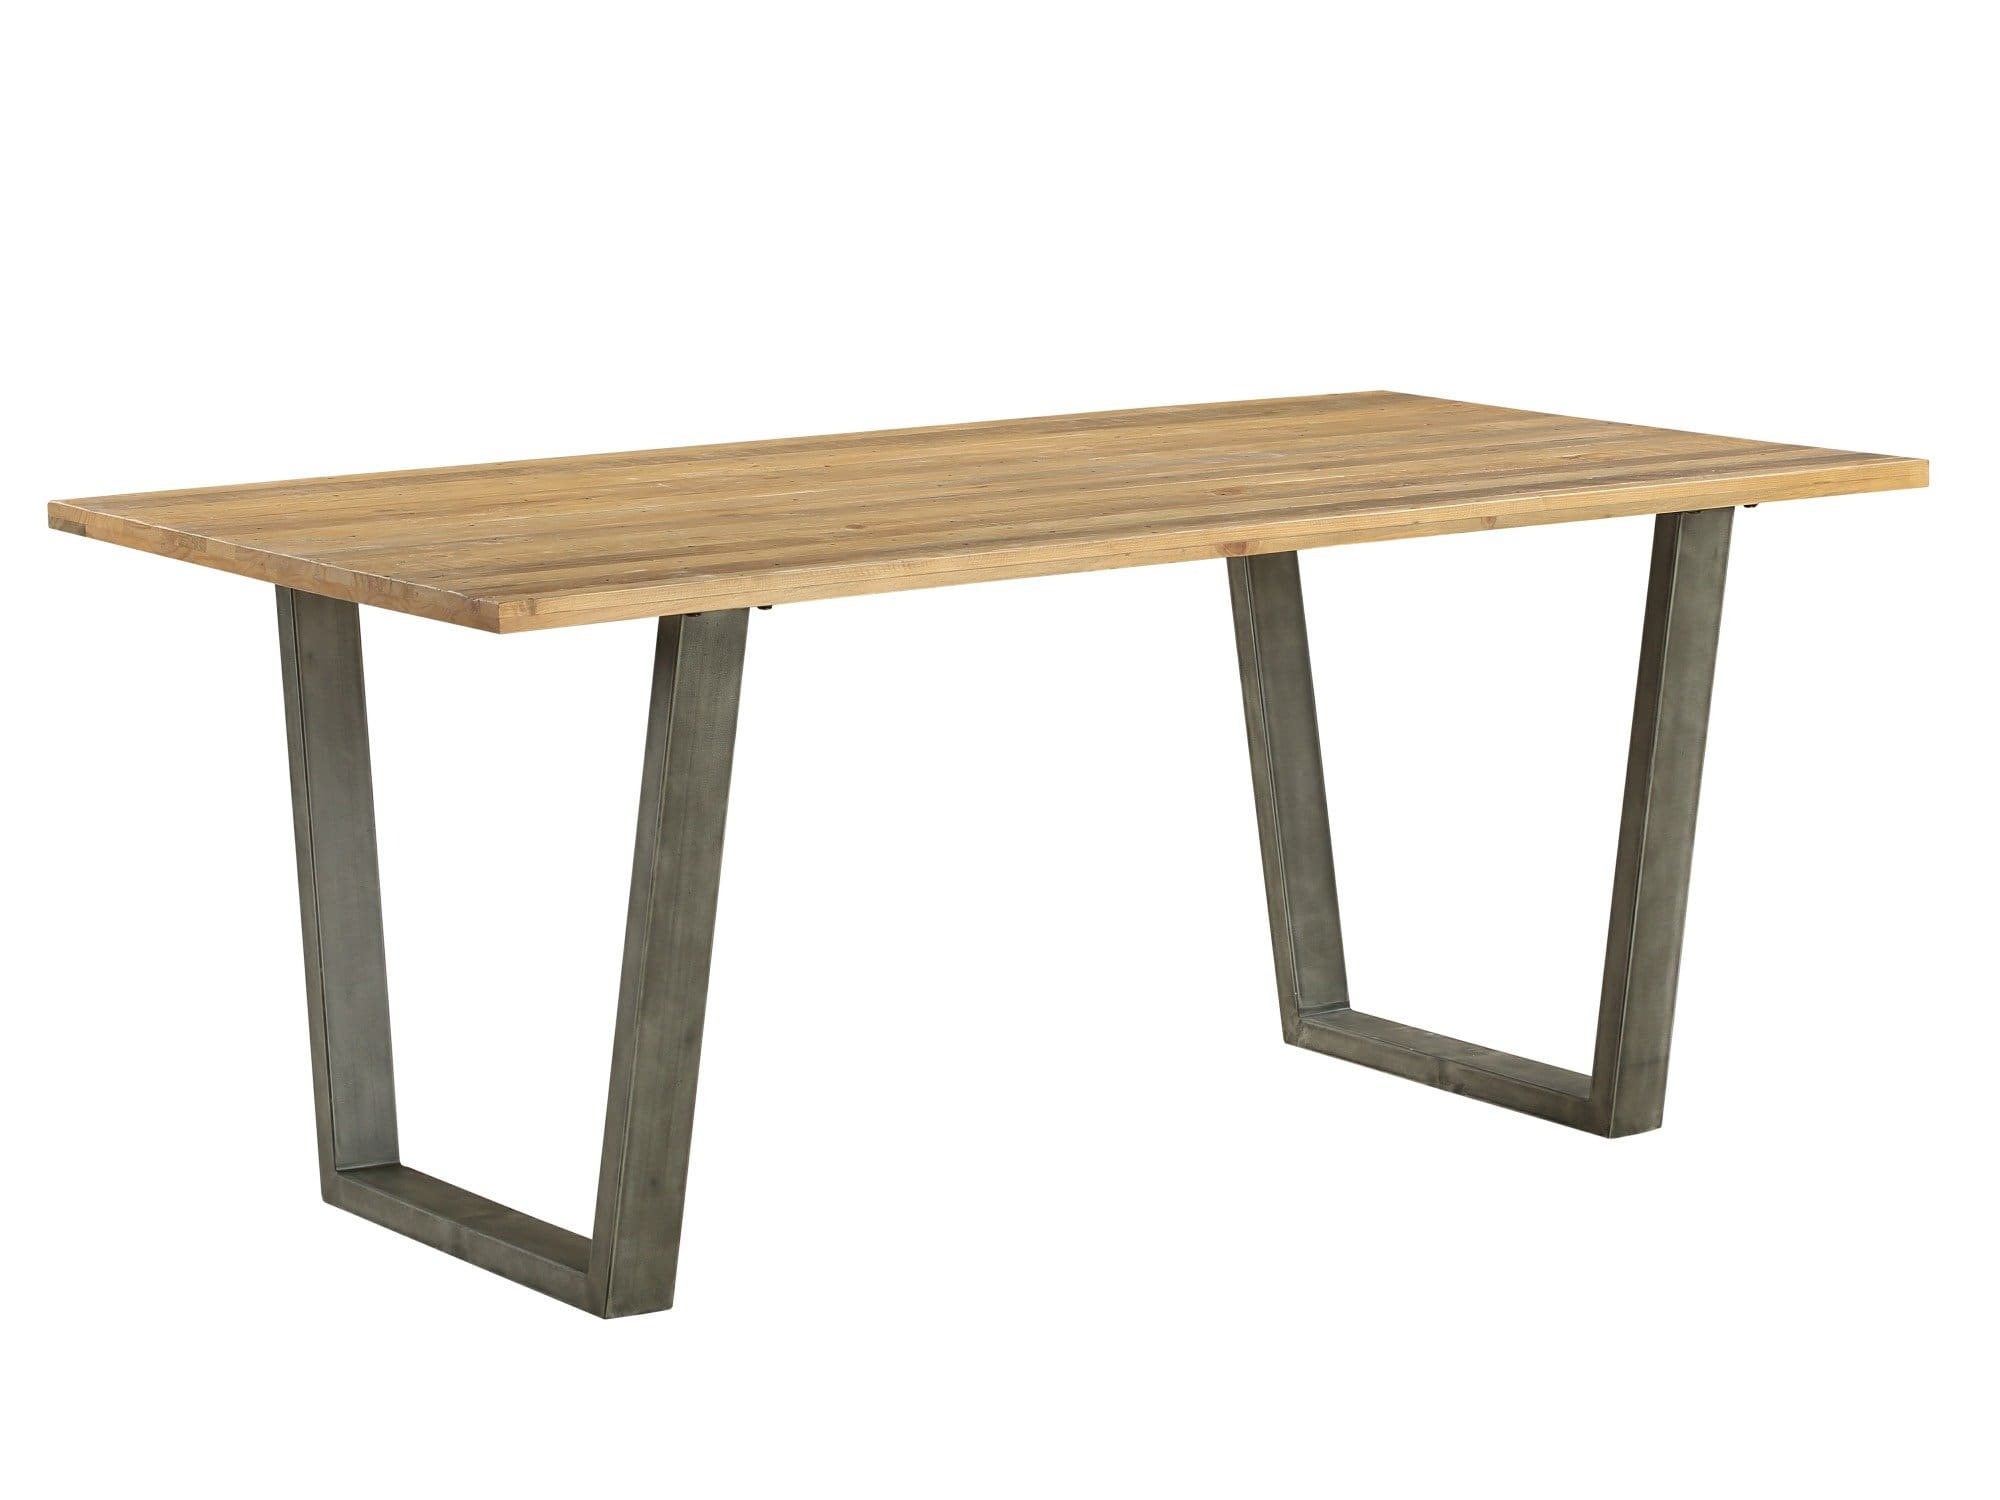 Industrial dining table with steel frame legs